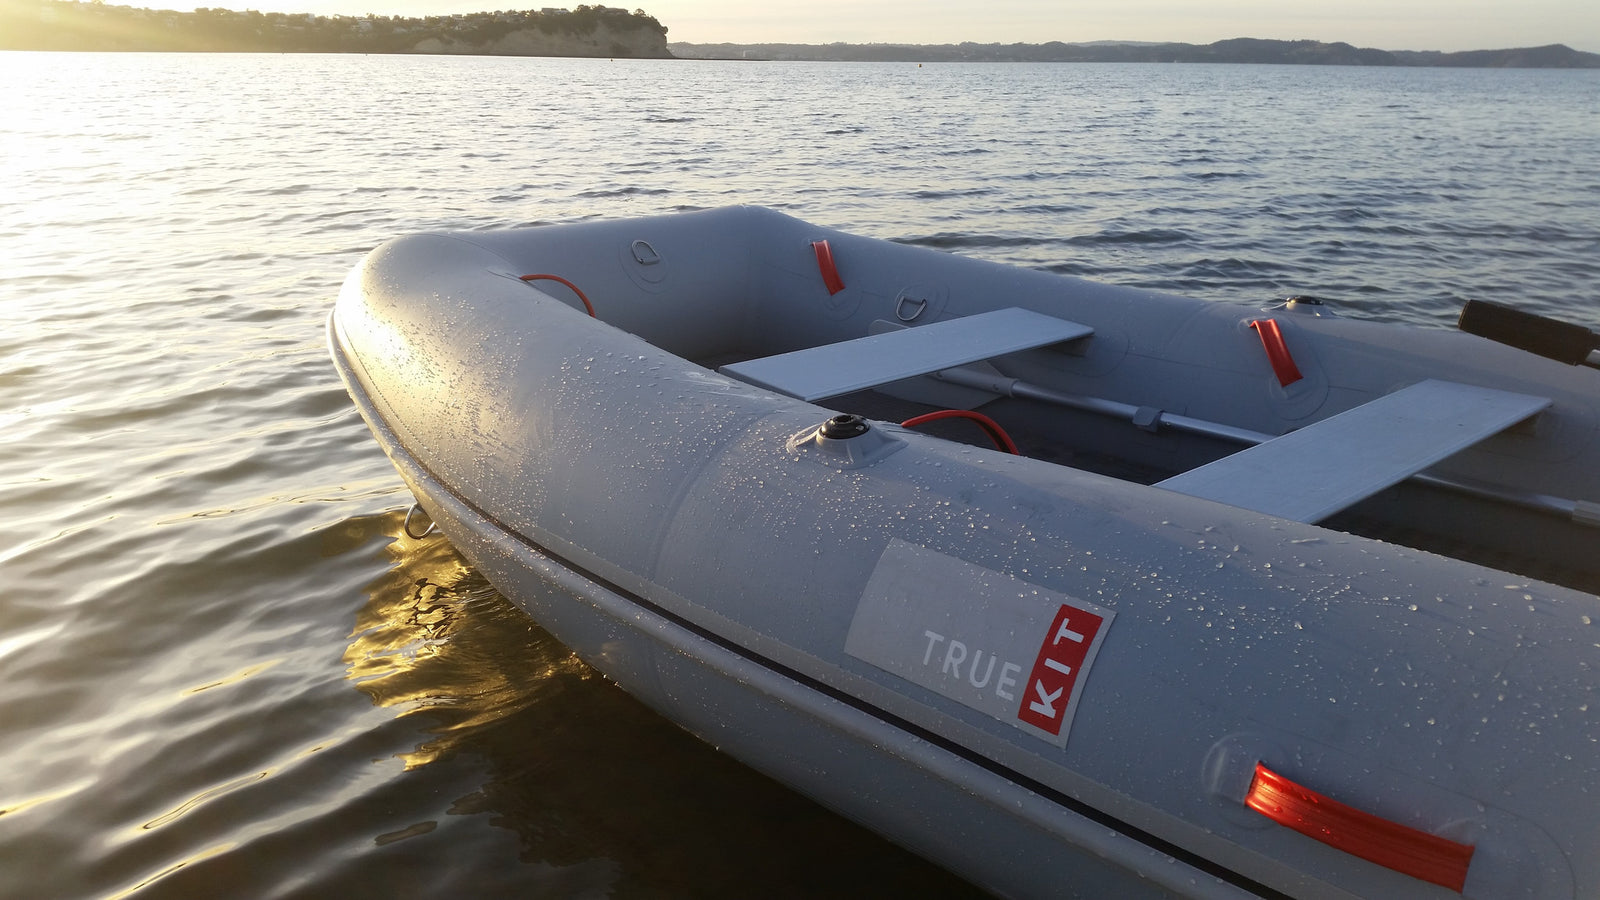 True Kit Navigator - stable, lightweight yacht tender